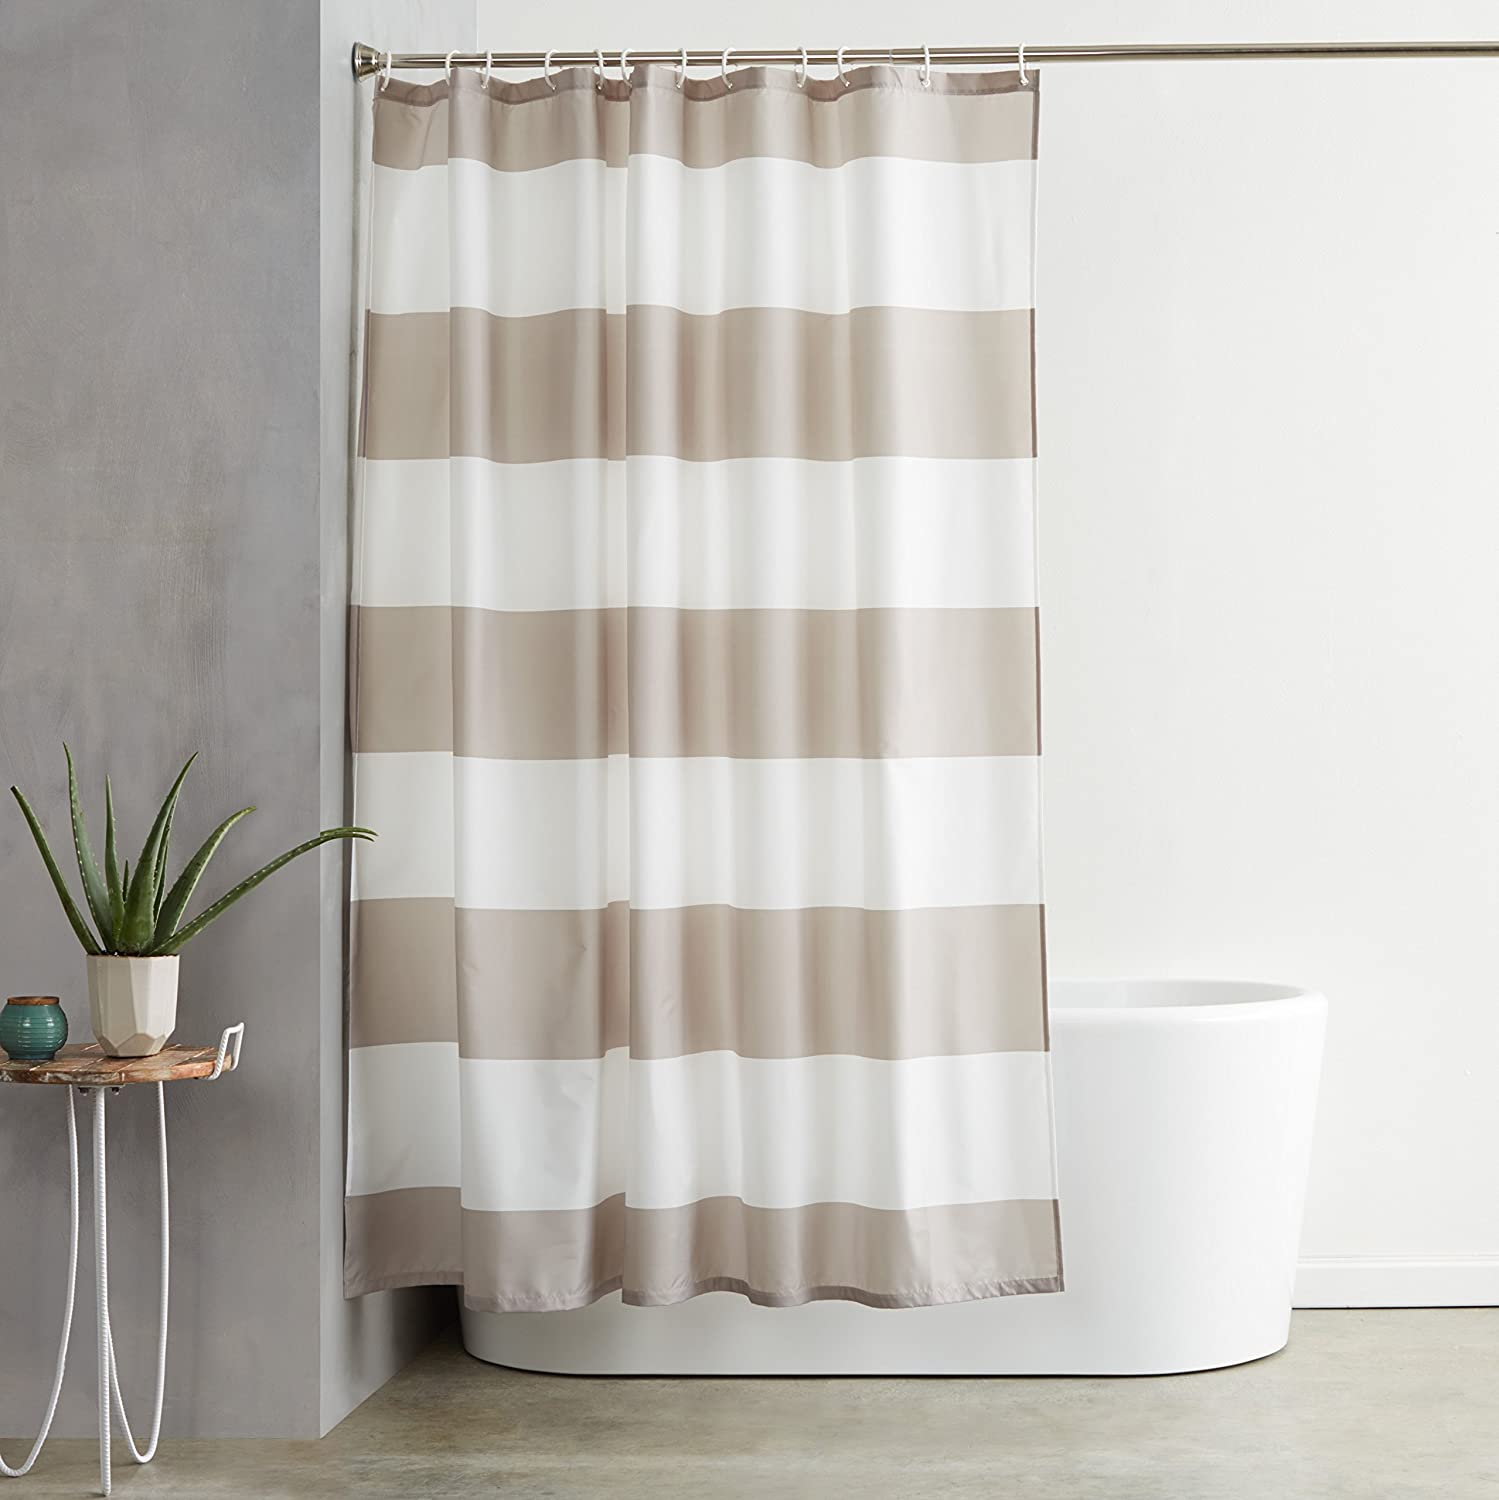 cozy sand and white color shower curtain as a cheap way to decorate